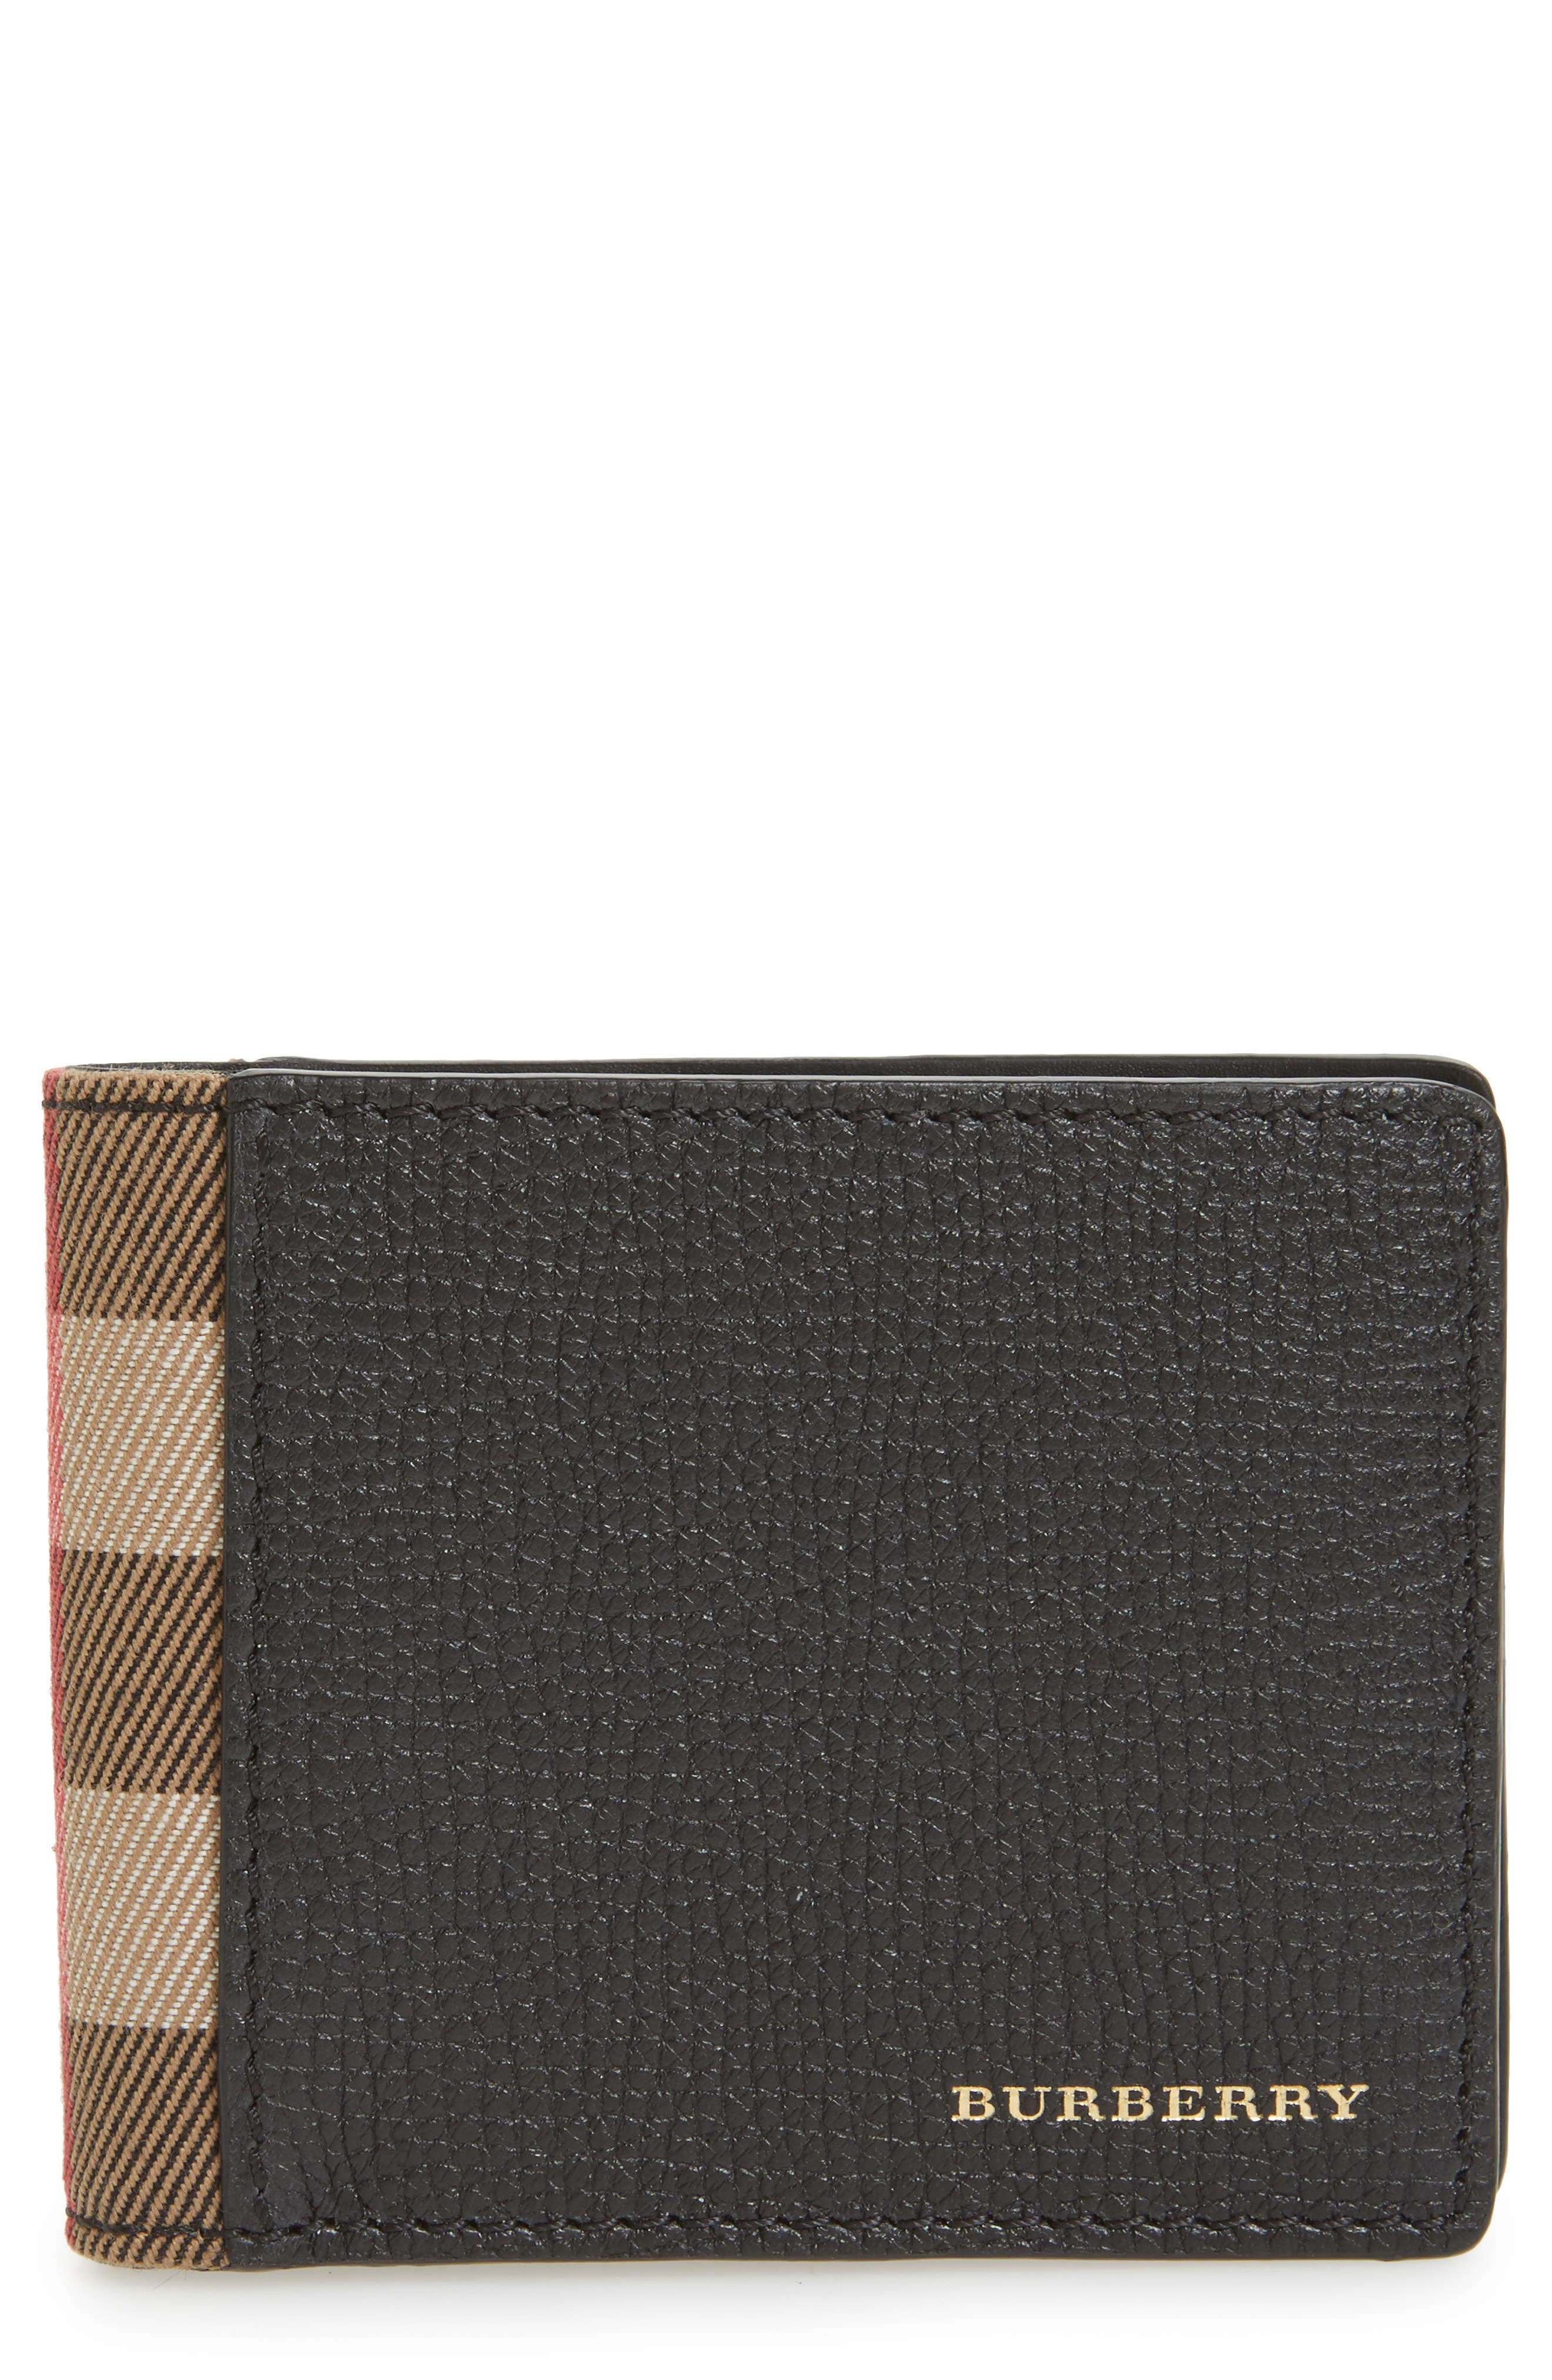 Check Leather Wallet,                         Main,                         color, 001